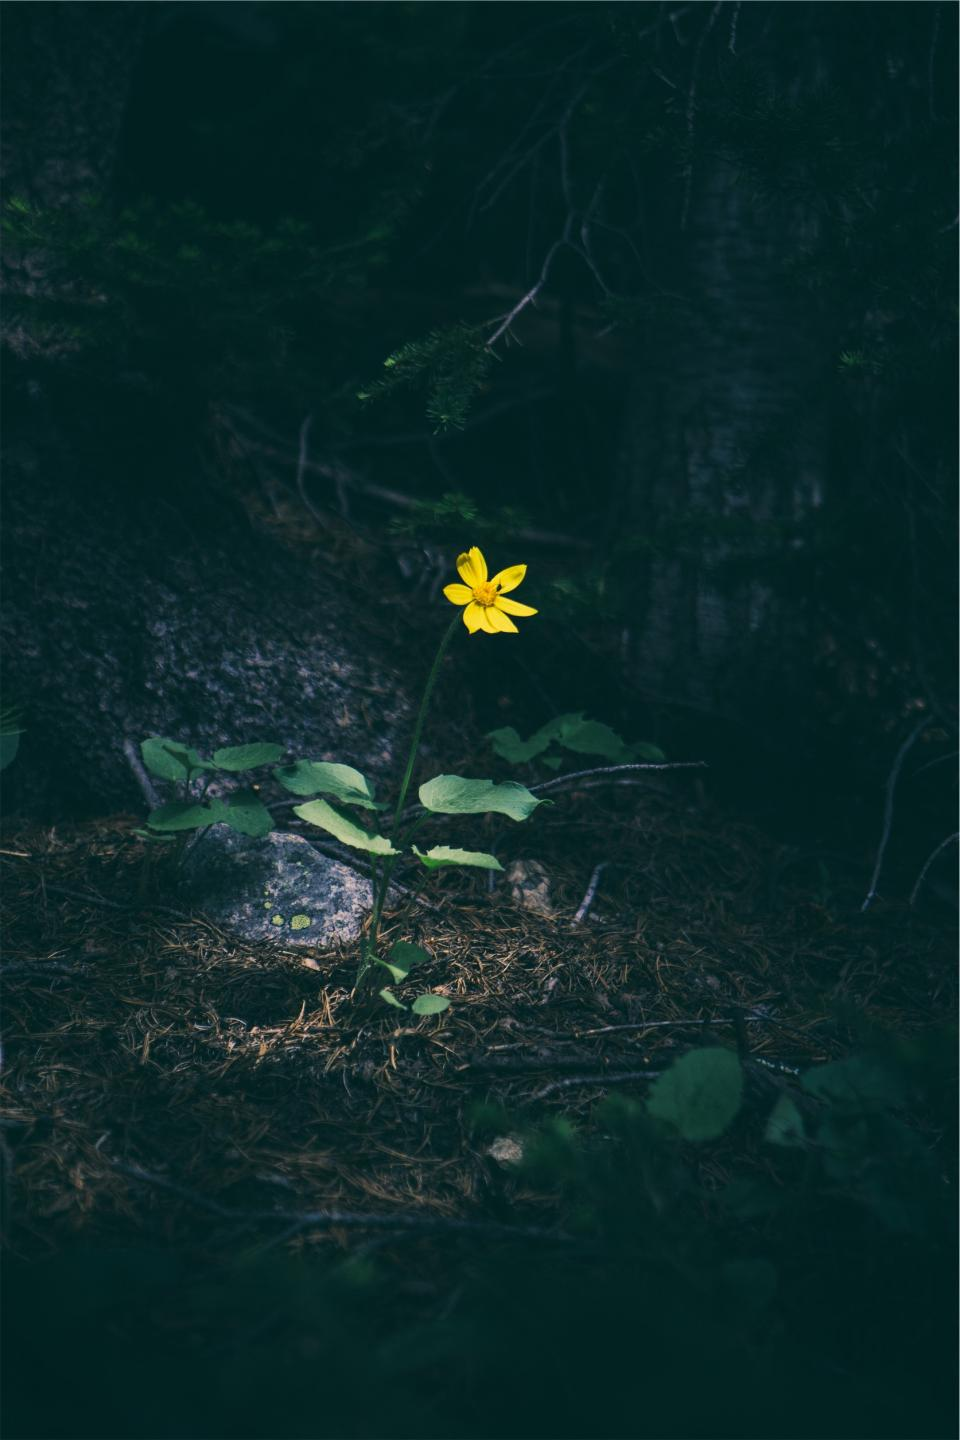 yellow, flower, forest, woods, nature